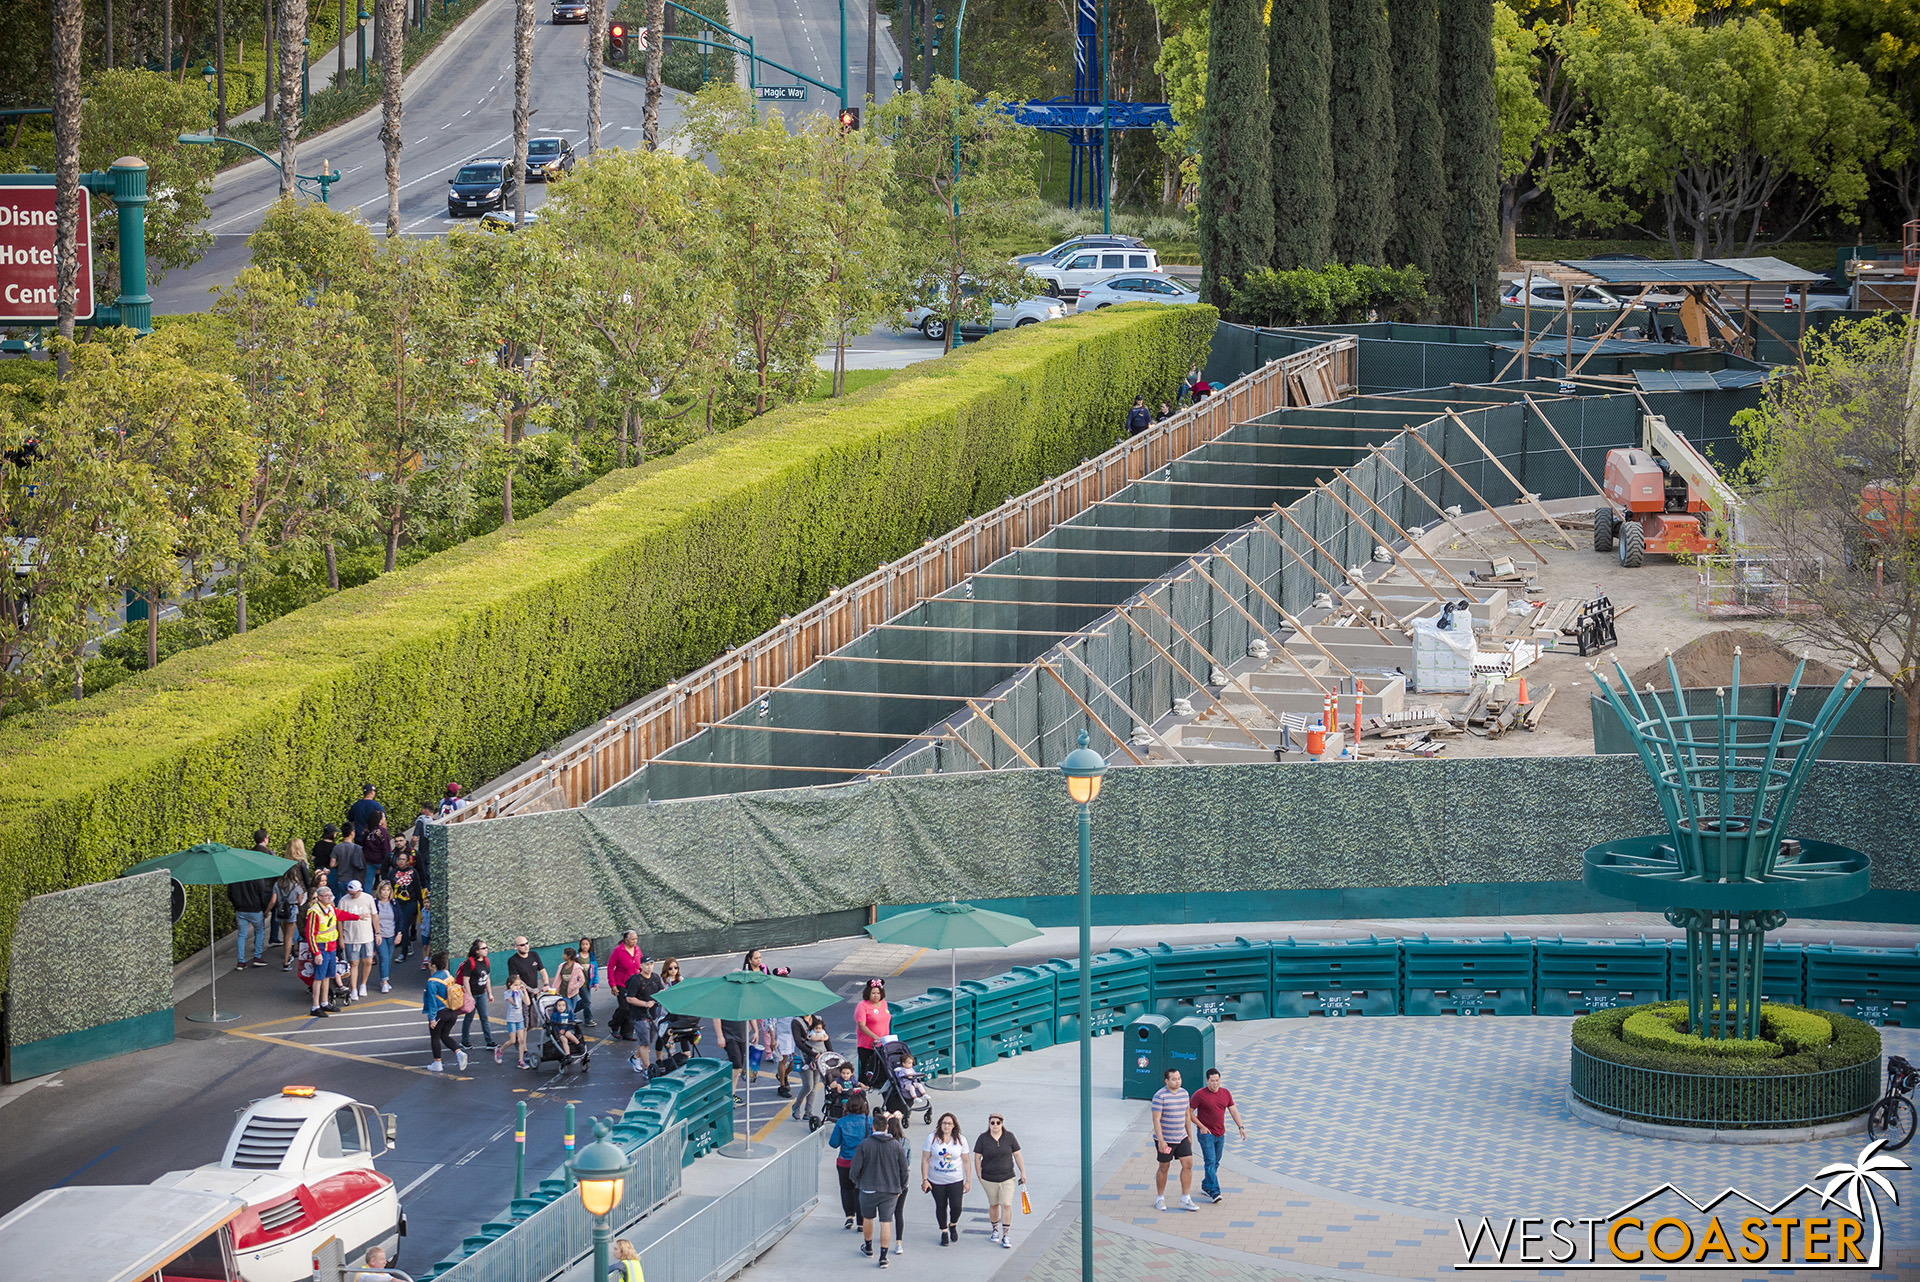 They've started working on the tram route pavement and some of the landscaping necessary.